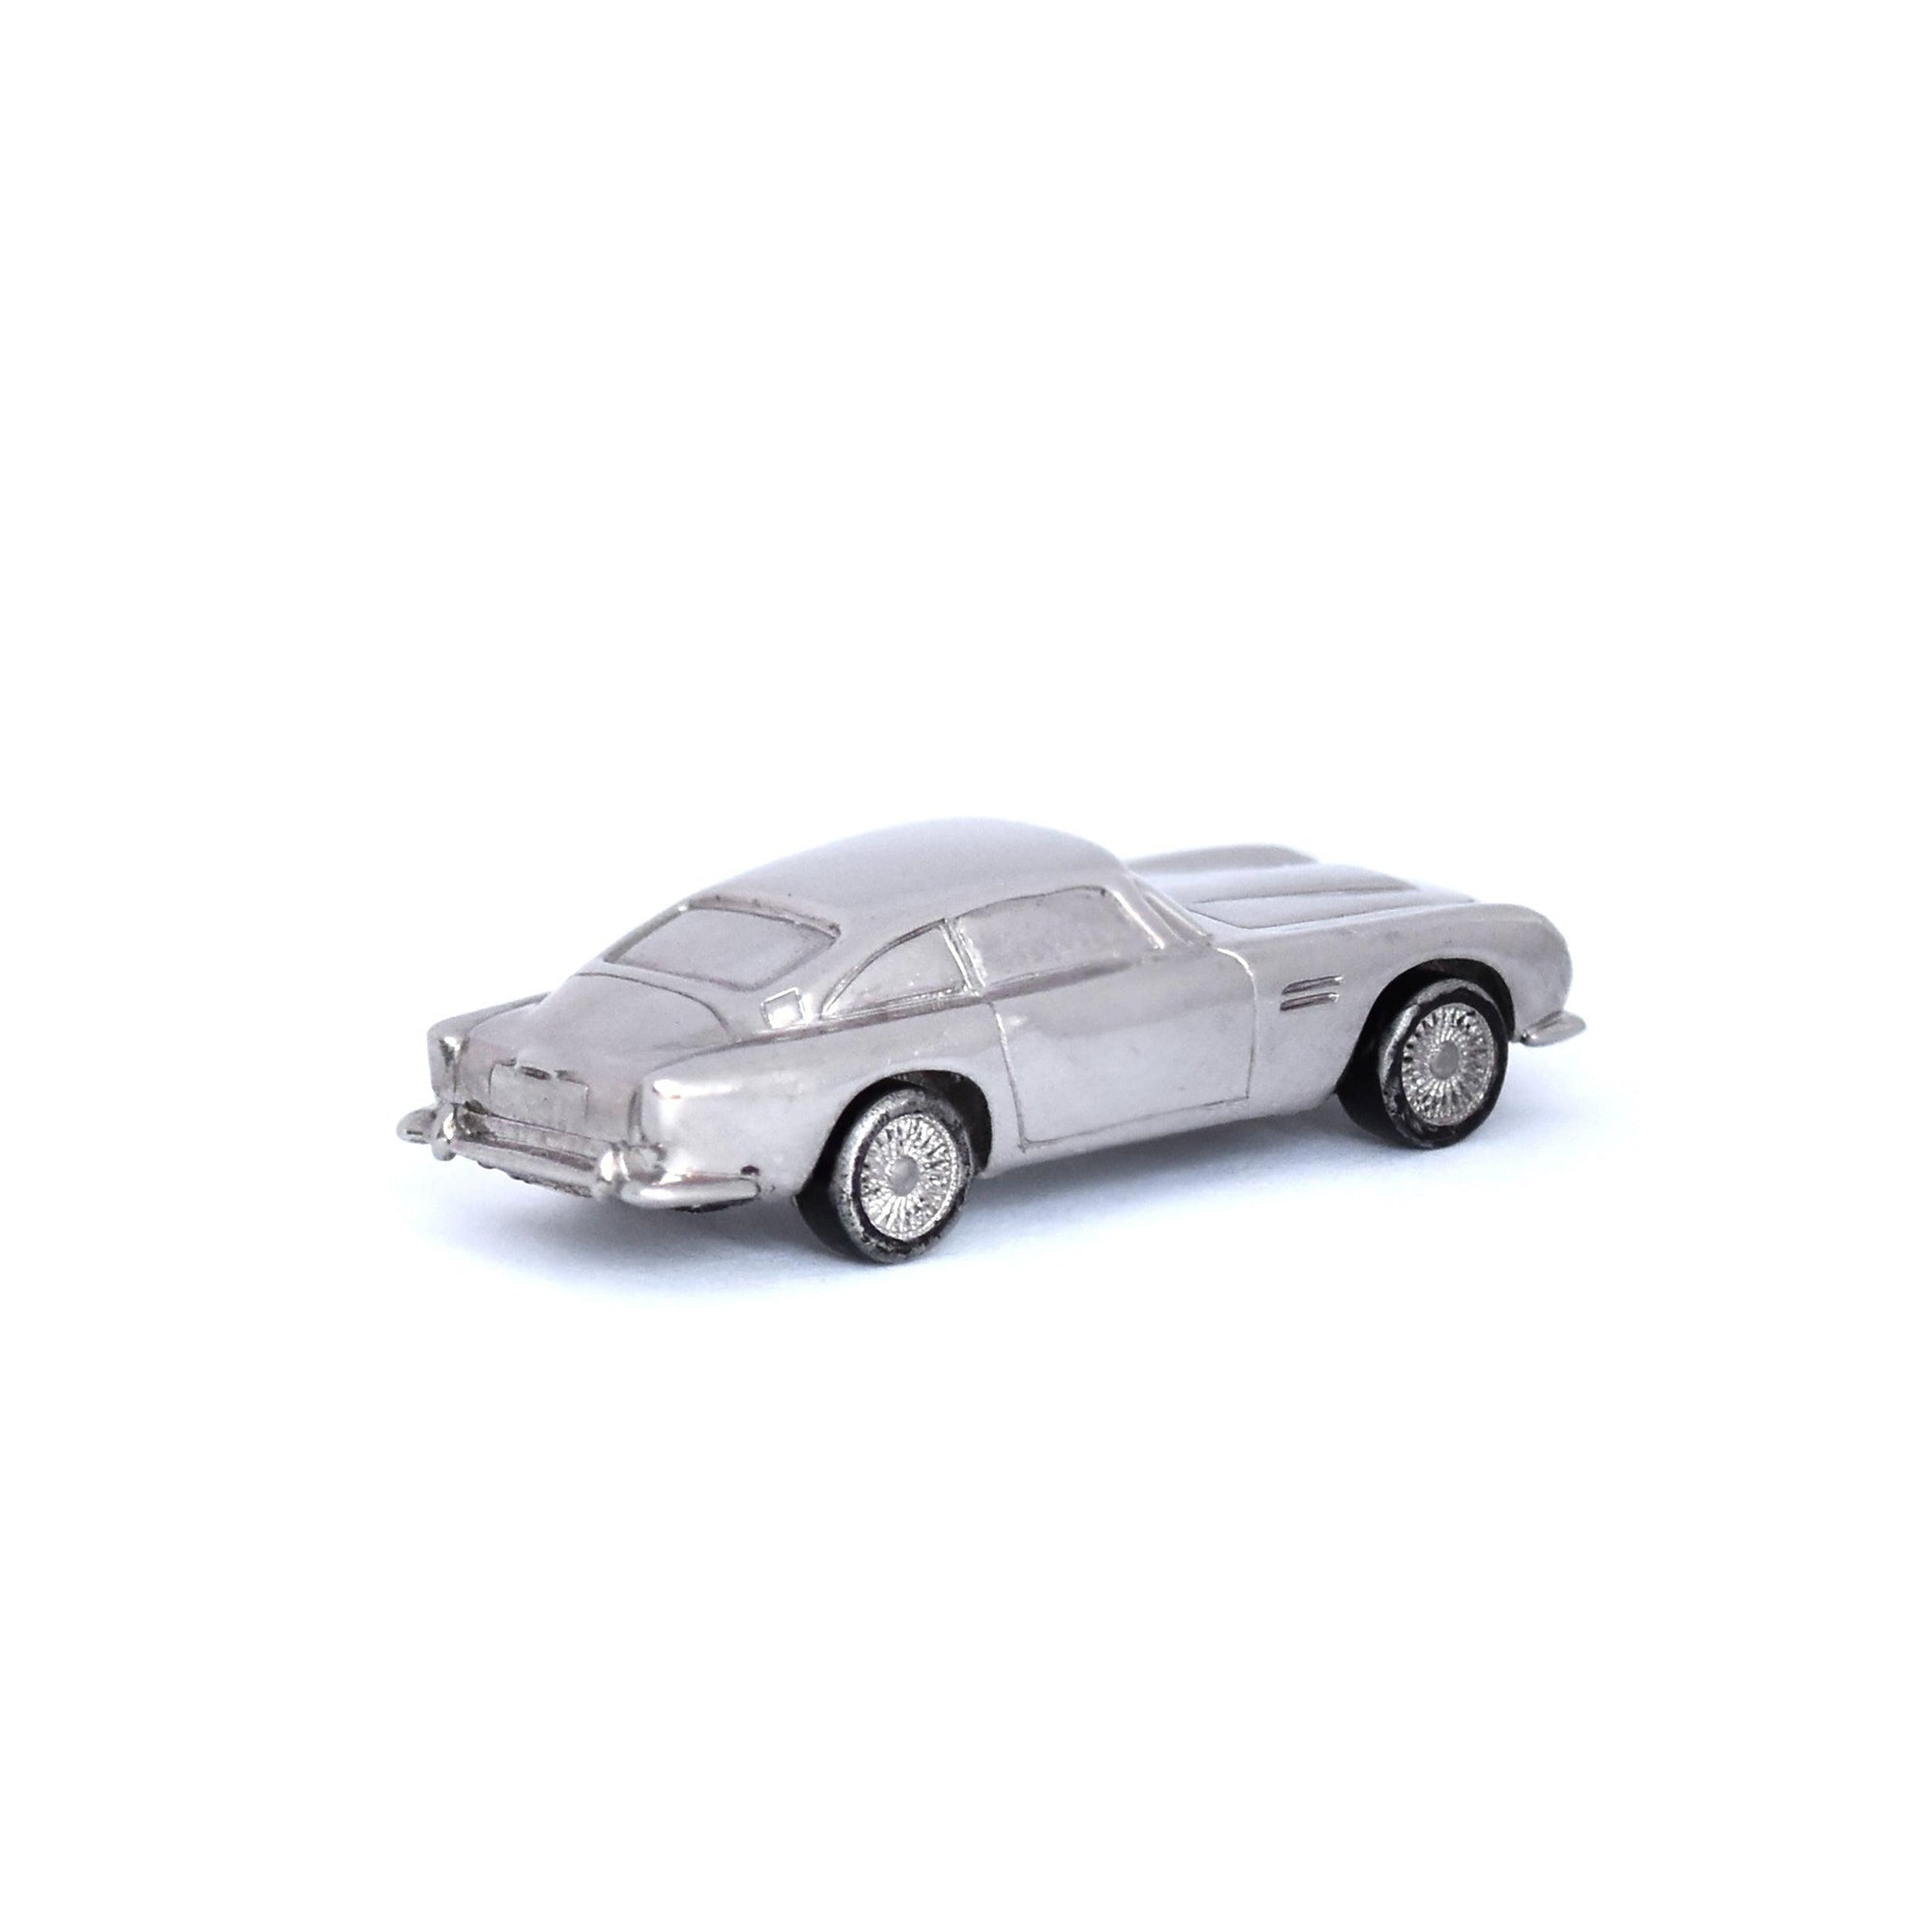 LaParra_Jewels_toy_car_gold_diamonds_luxury_toy_exclusive_toy_gold_diamonds_one_of_a_kind_handmade_car_miniature_minicar_Aston_Martin_miniature